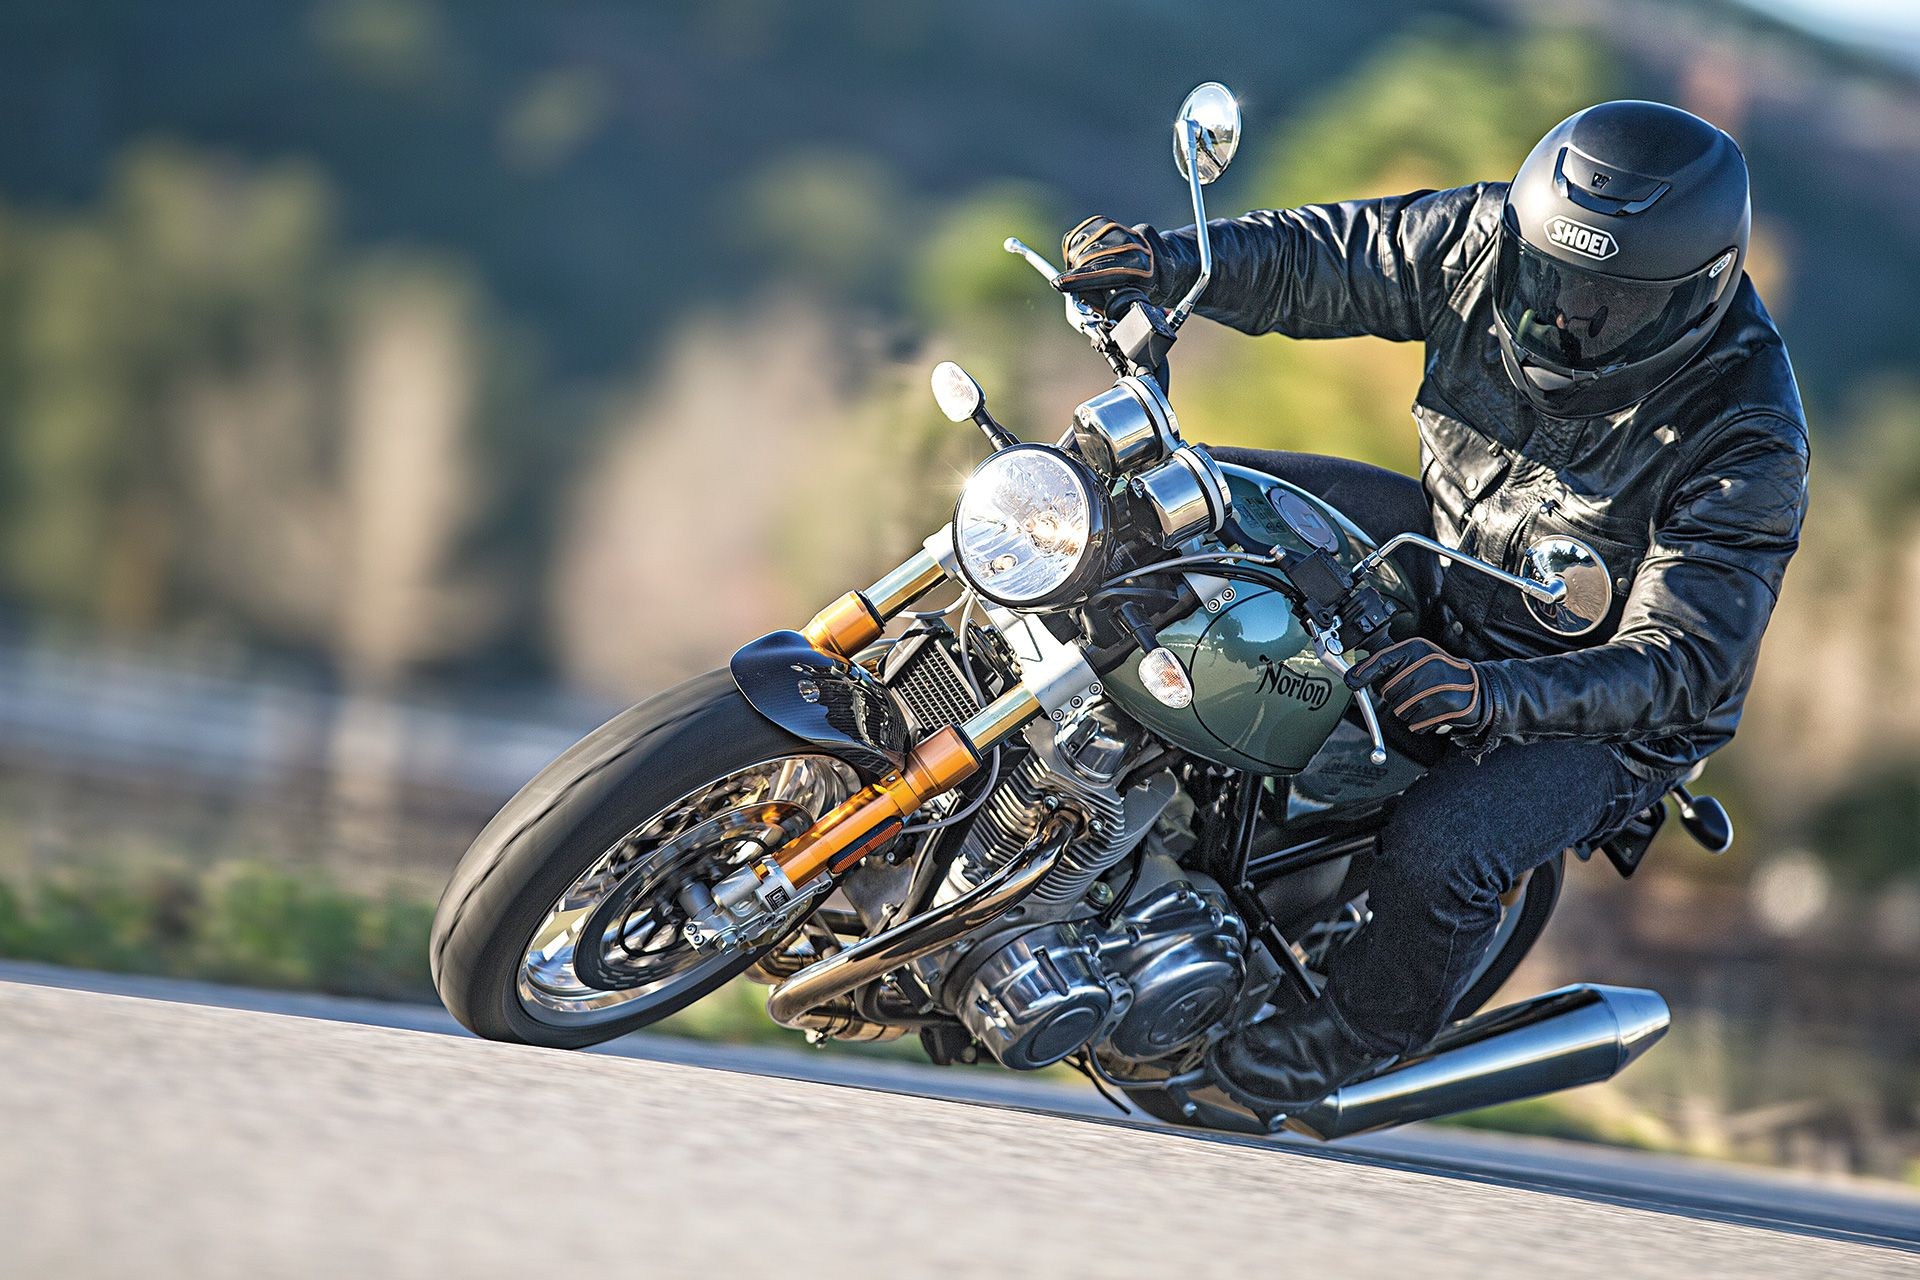 2015 Norton Commando 961 Sport Motorcycle Review | Cycle World